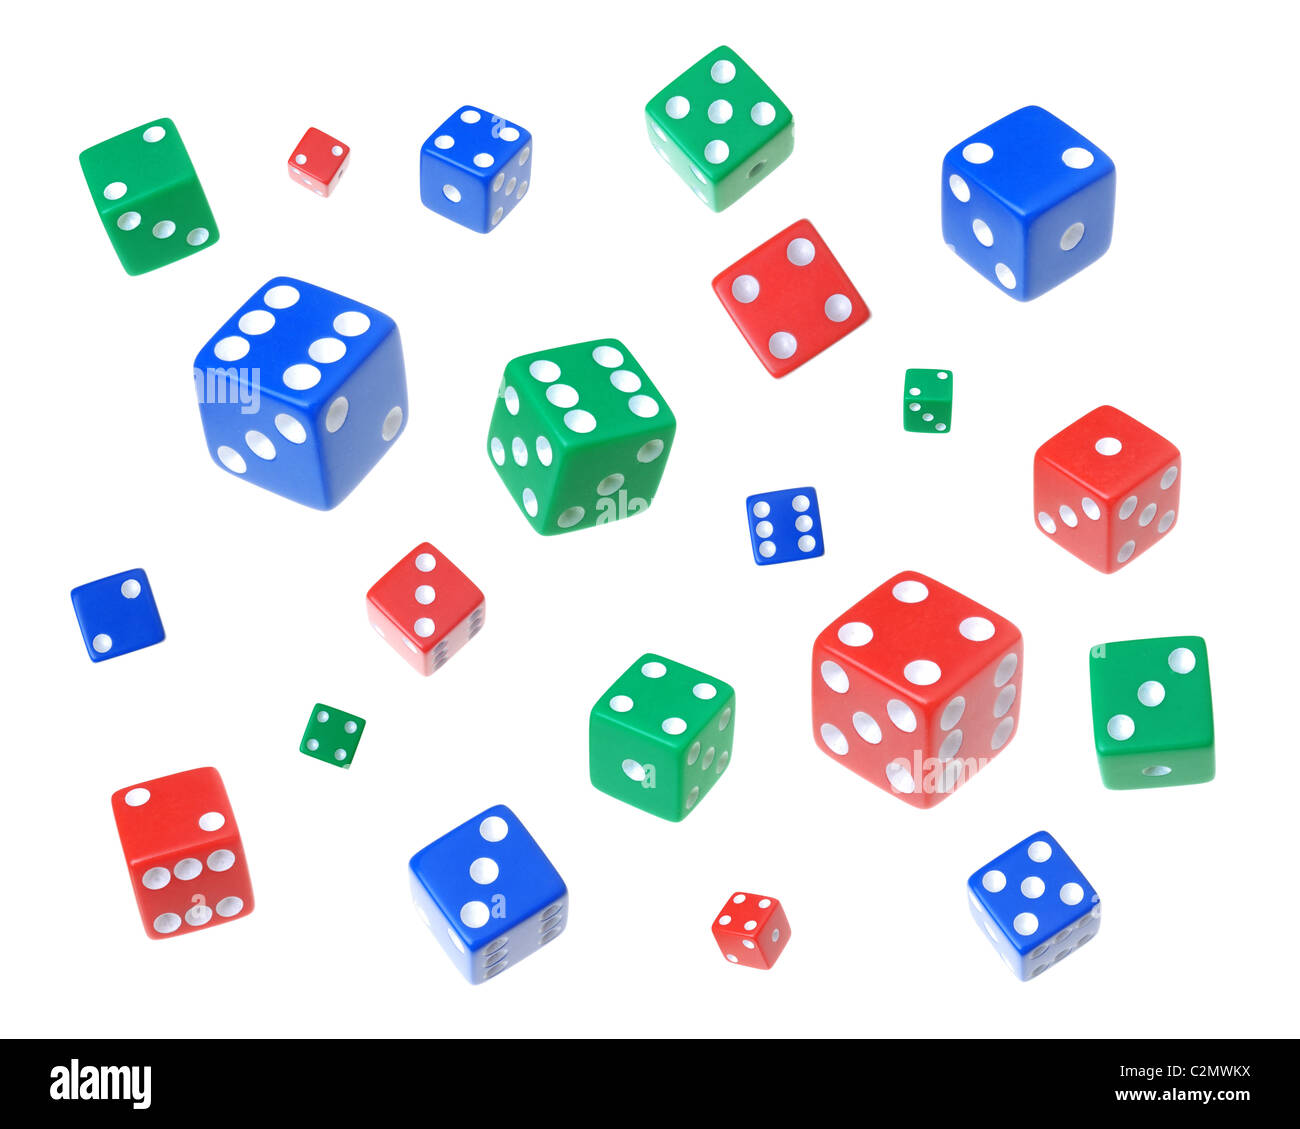 dice in primary colors - Stock Image